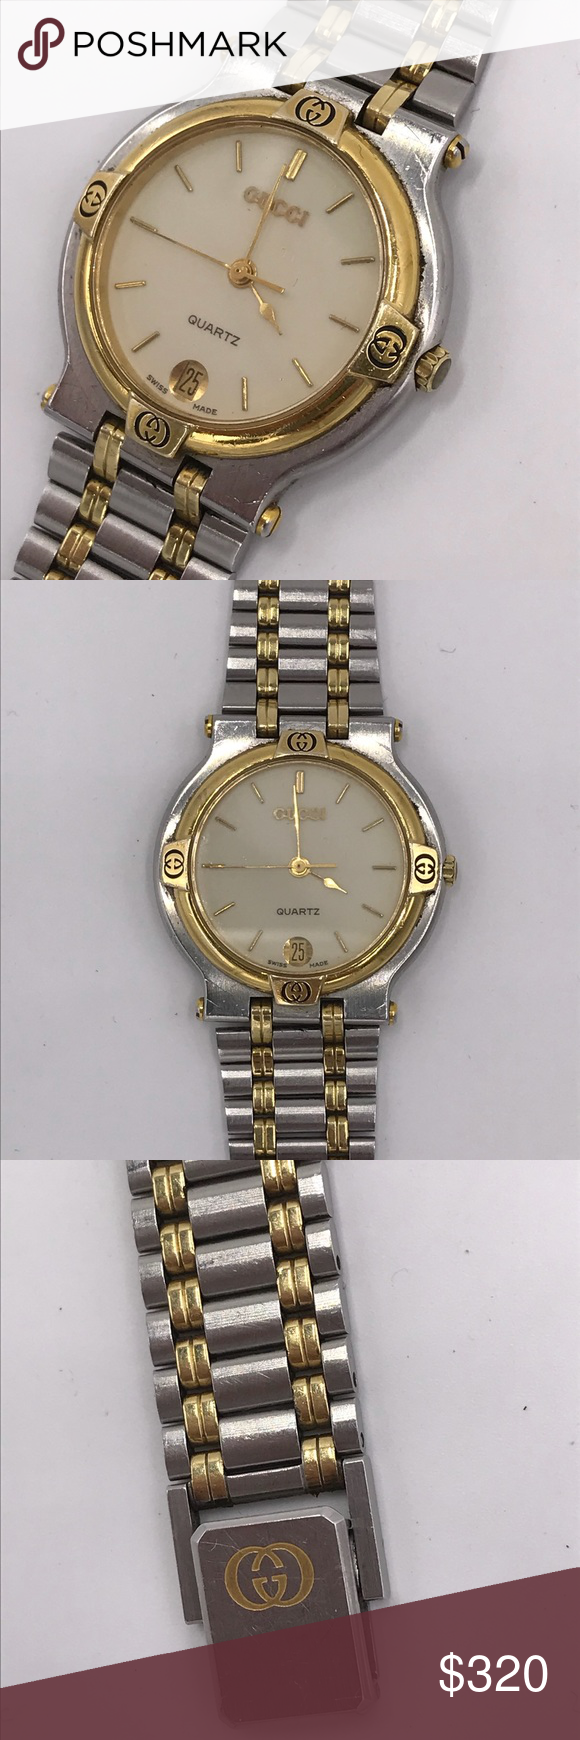 cc8ca82e257 Authentic Vintage Gucci Watch Authentic Vintage Gucci Watch Used  Good  working Condition Normal Wear Color  Gold   Silver Gucci Accessories Jewelry